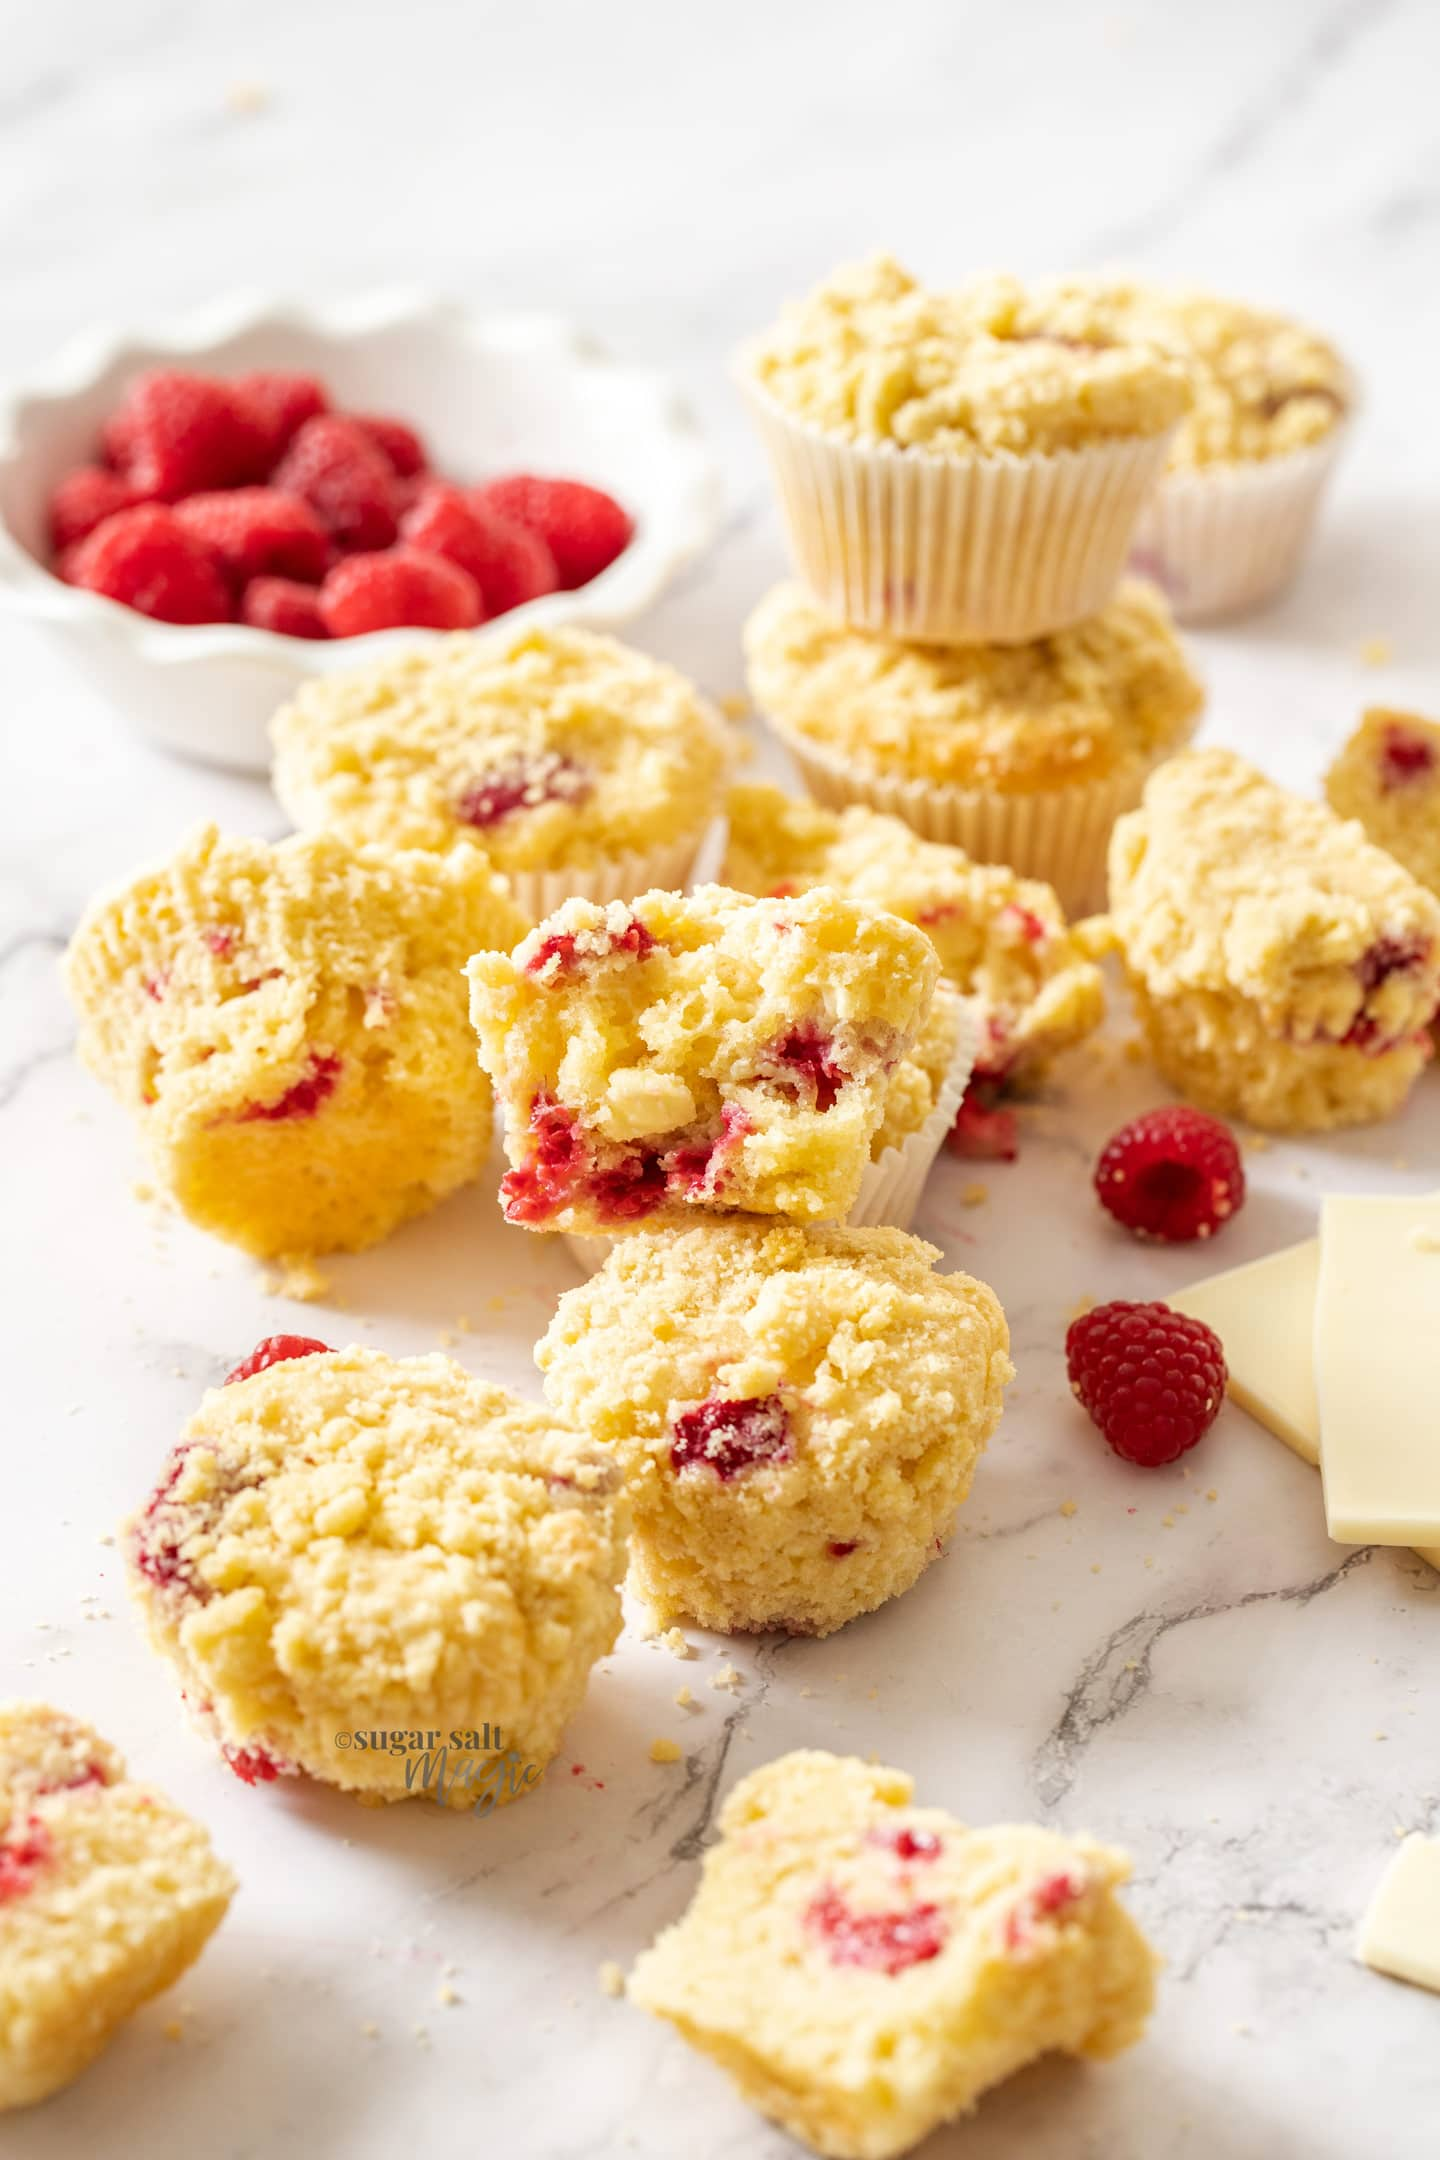 A batch of muffins with raspberries around them on a marble benchtop.